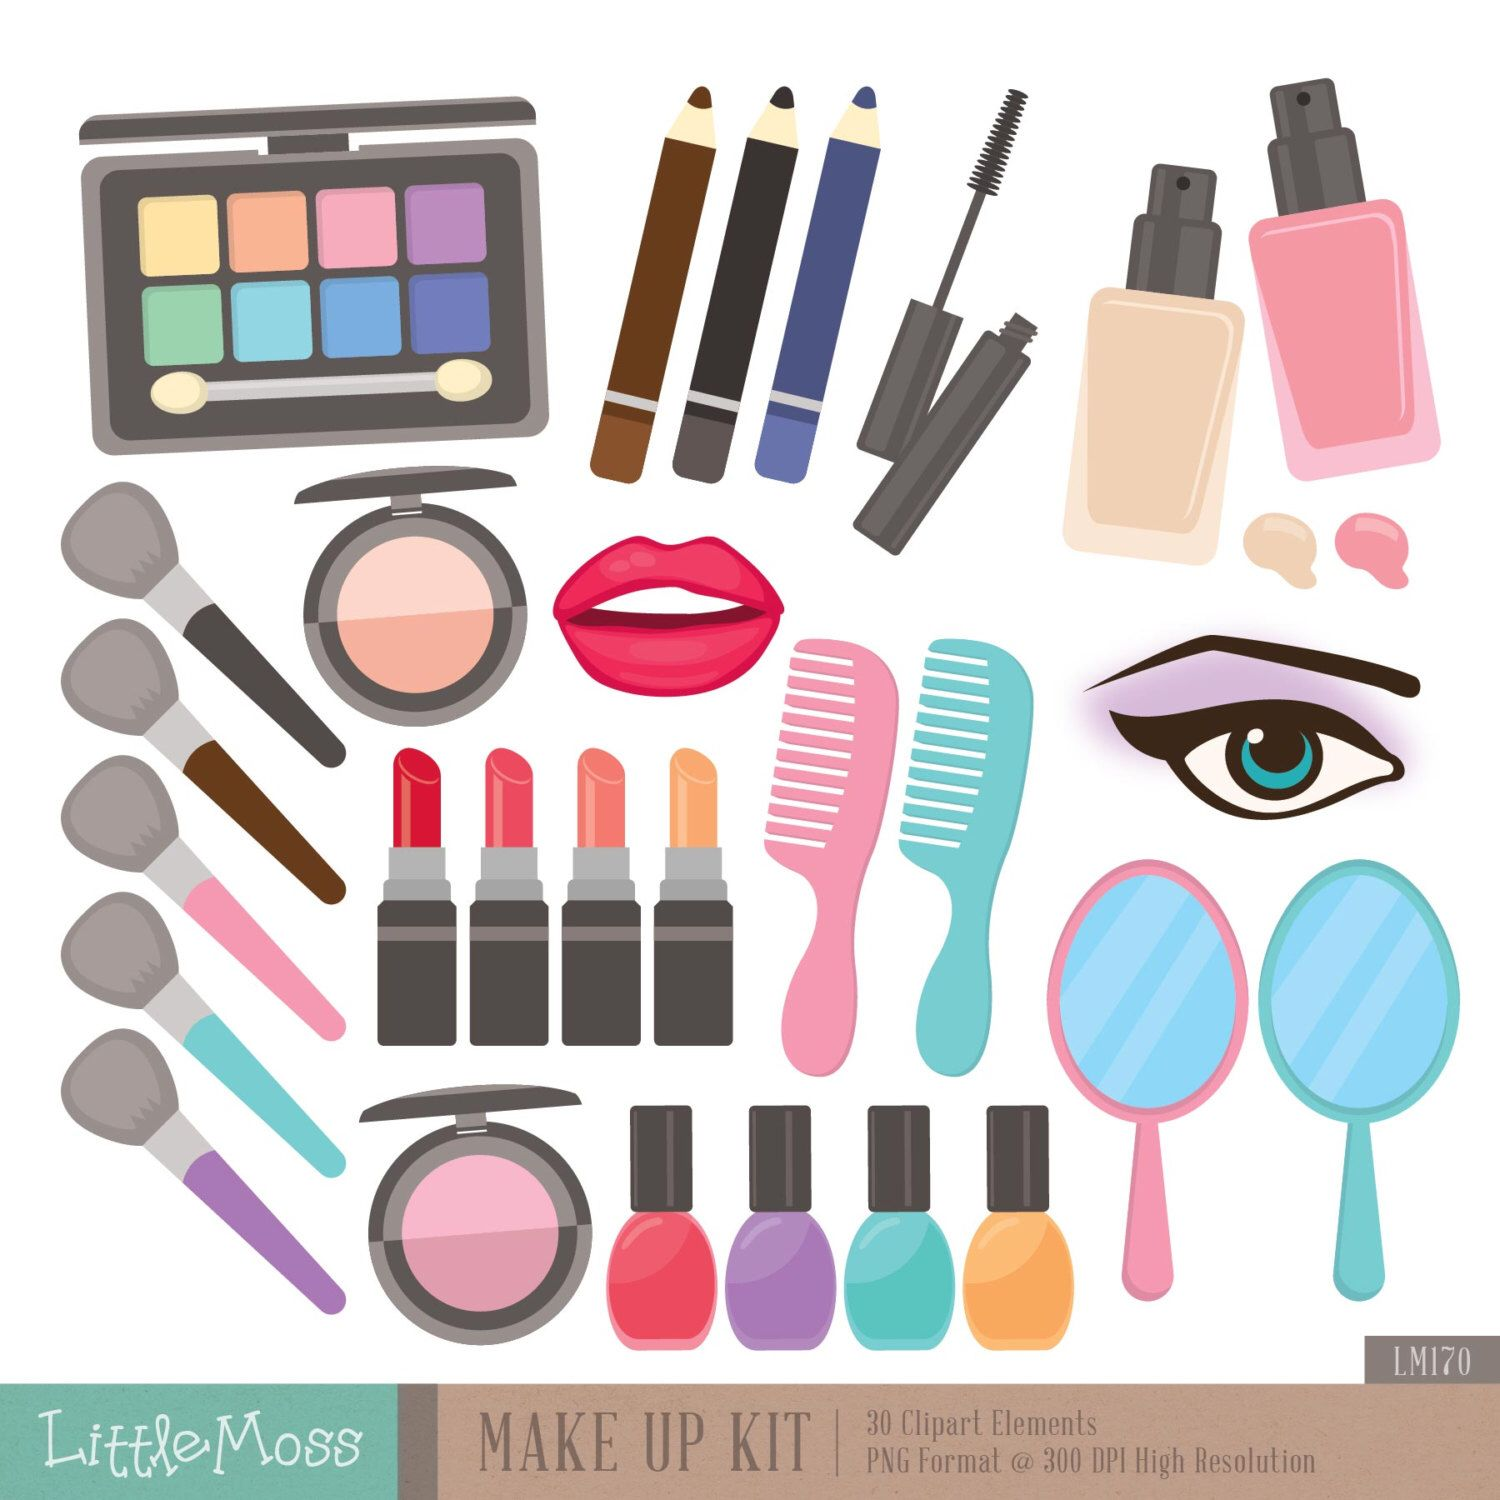 Make Up Kit Digital Clipart, Cosmetic Cl-Make Up Kit Digital Clipart, Cosmetic Clipart-15